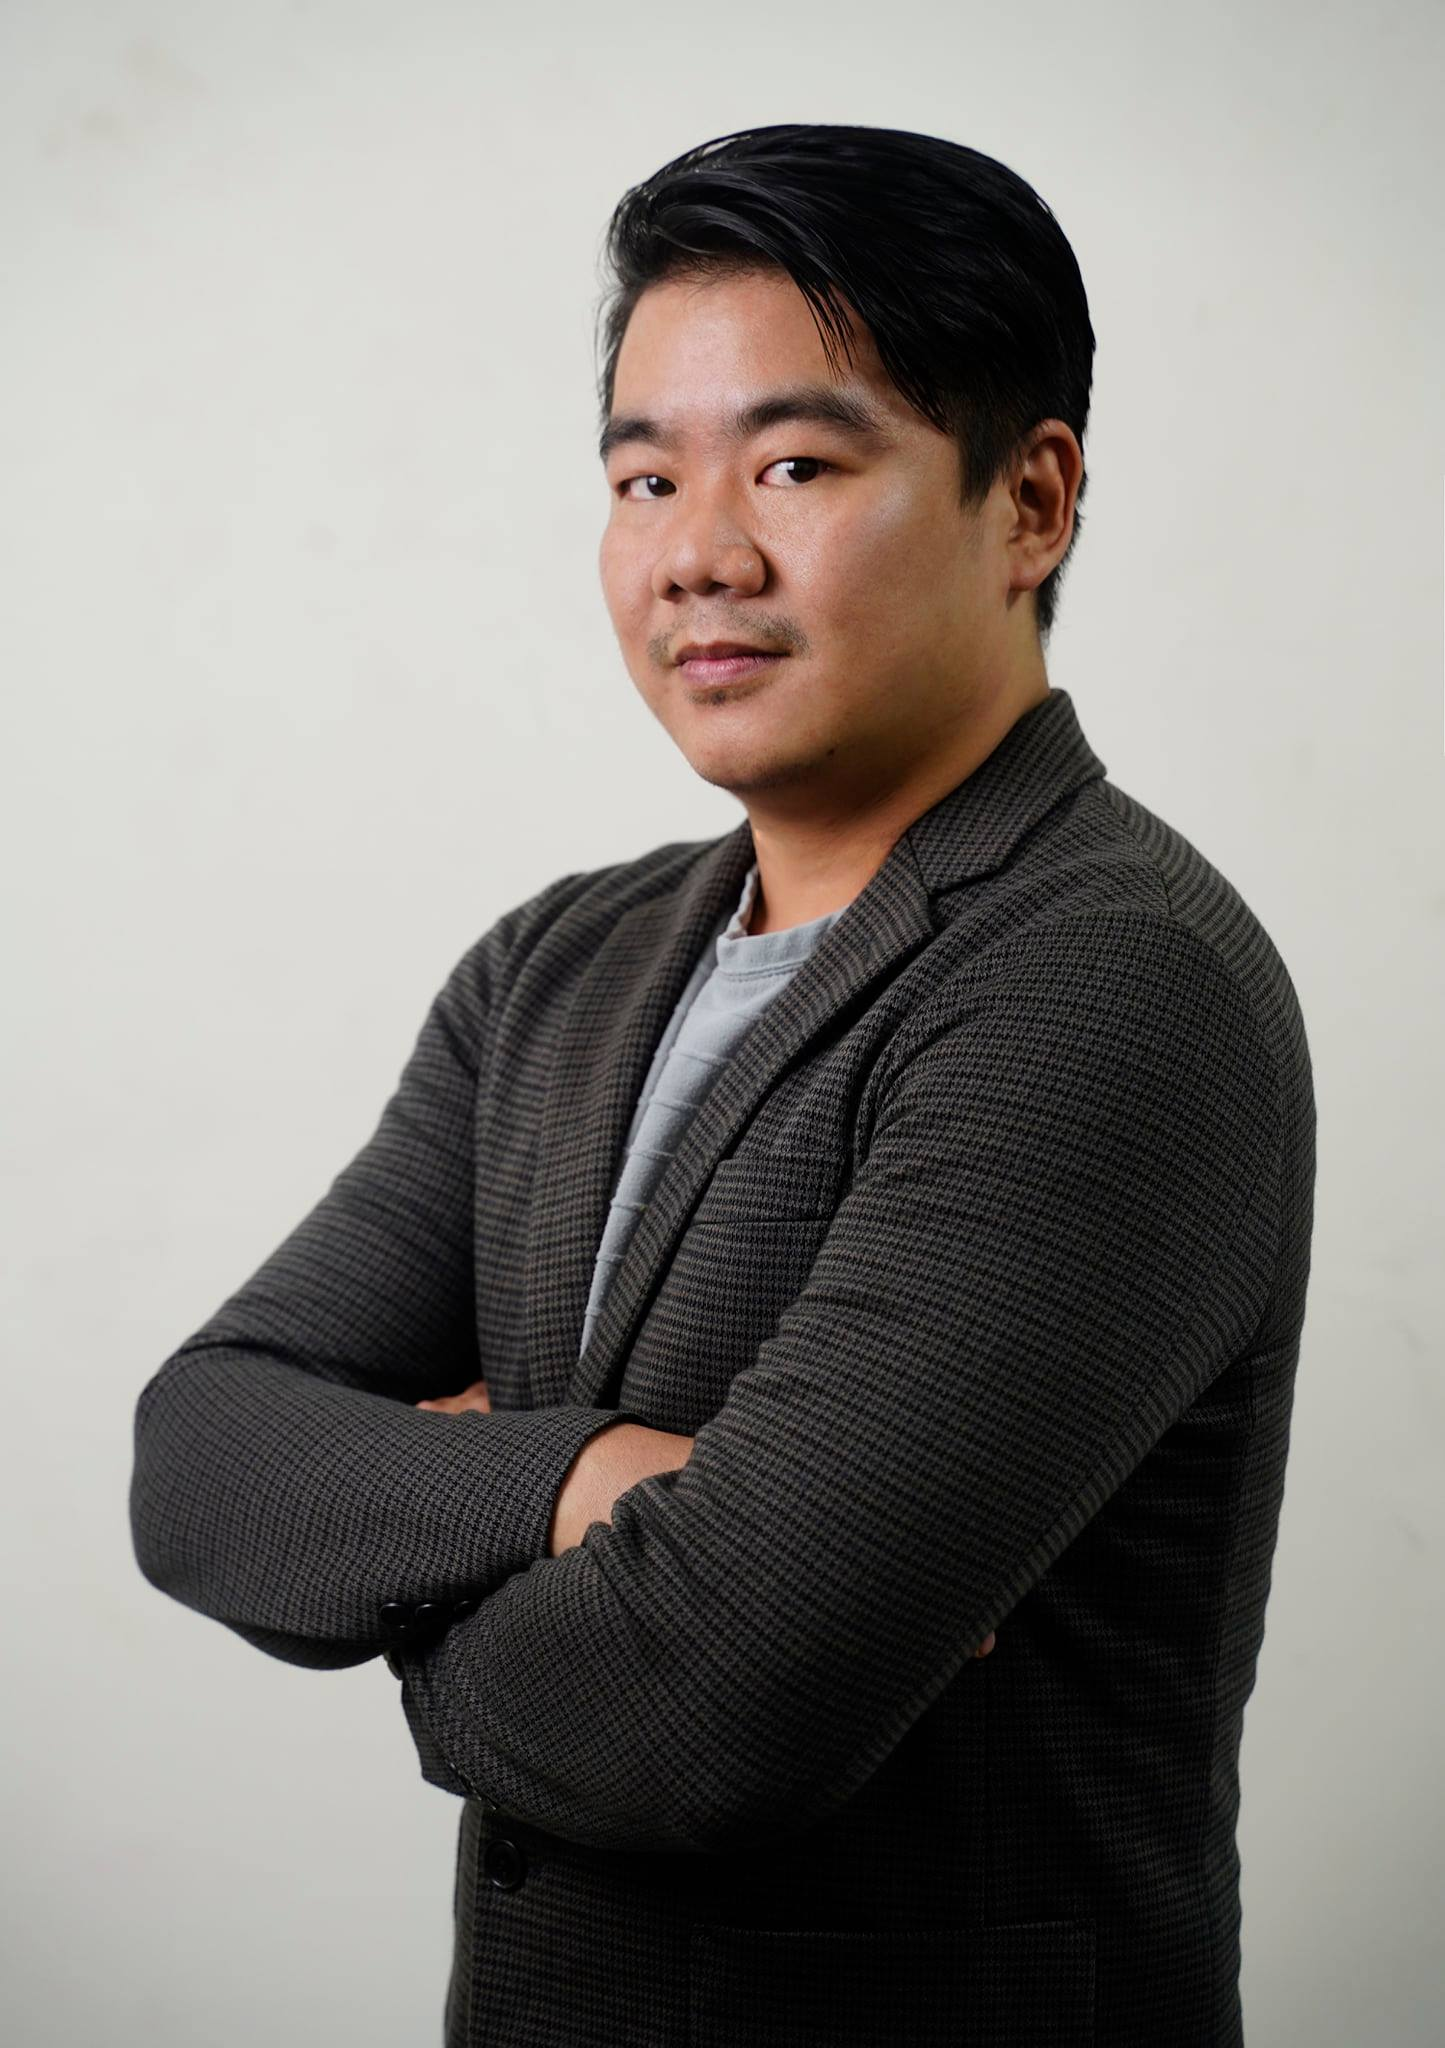 Professional portait of Chong Hai Liang in a black jacket, arms crossed.